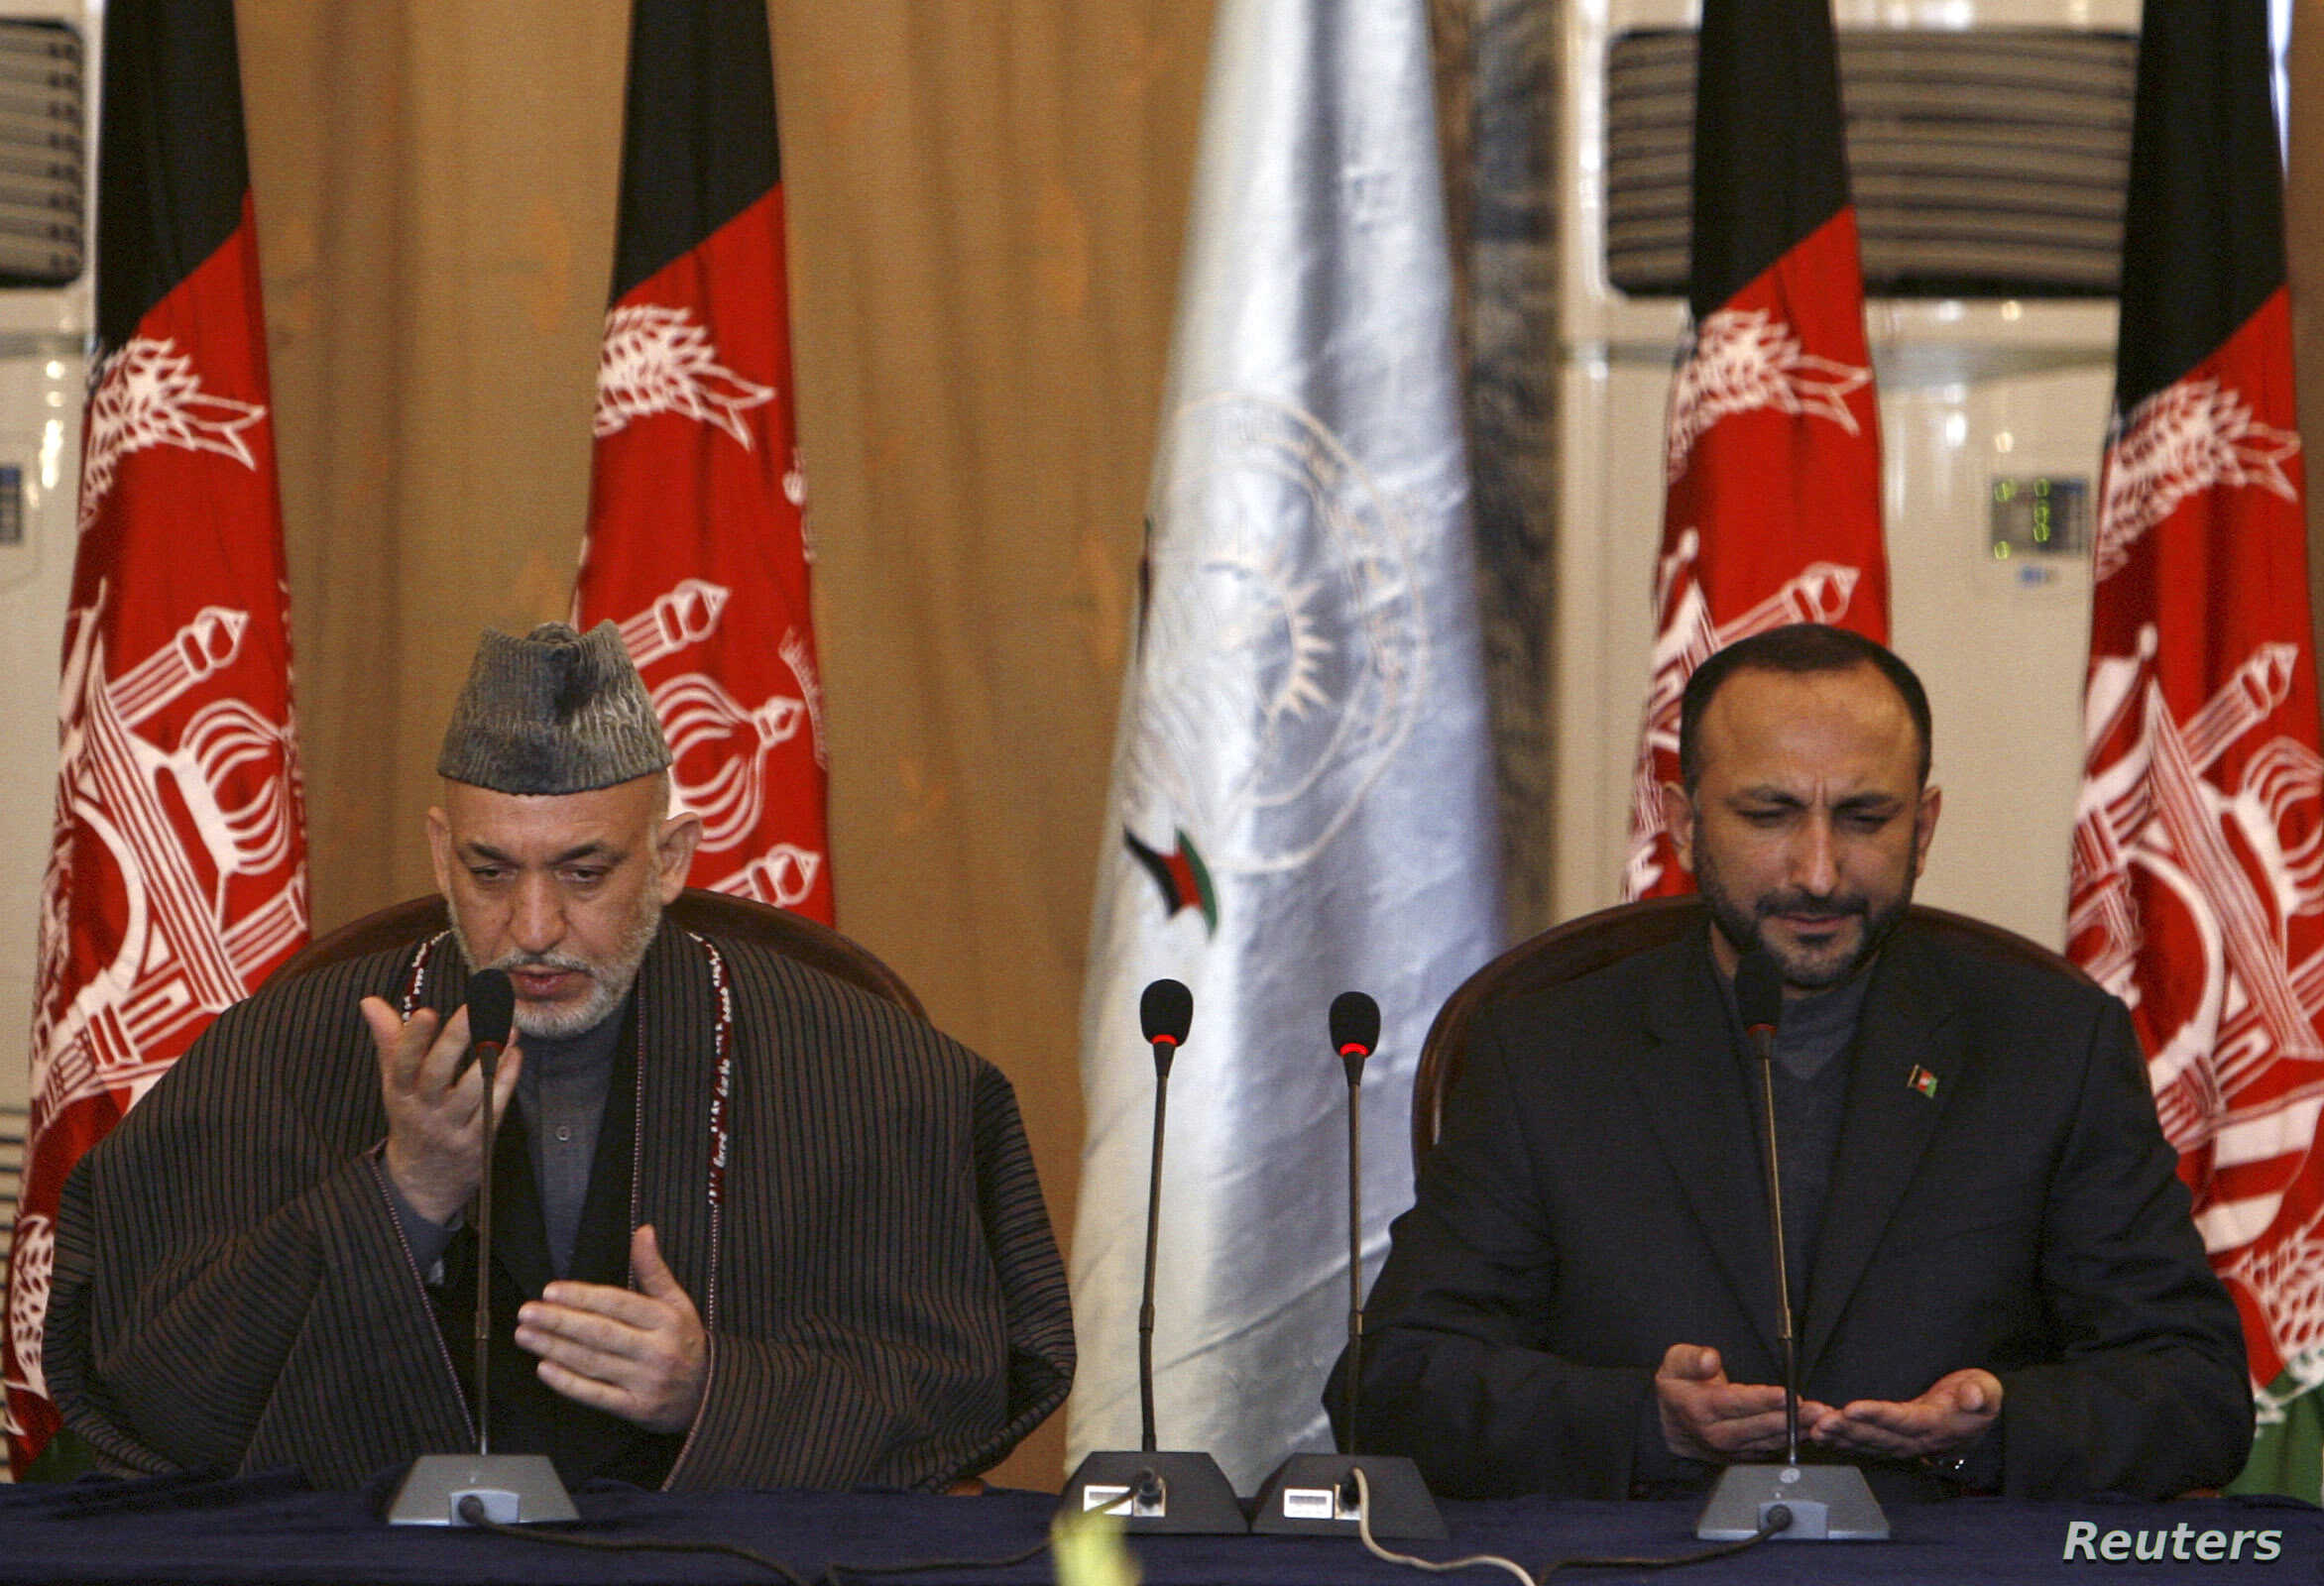 Former Afghan president Hamid Karzai, left, and former national security adviser Haneef Atmar, seen here offering prayers at a forum in forum in Kabul, Feb. 12, 2008, are among influential Afghans expected to attend the Moscow talks.